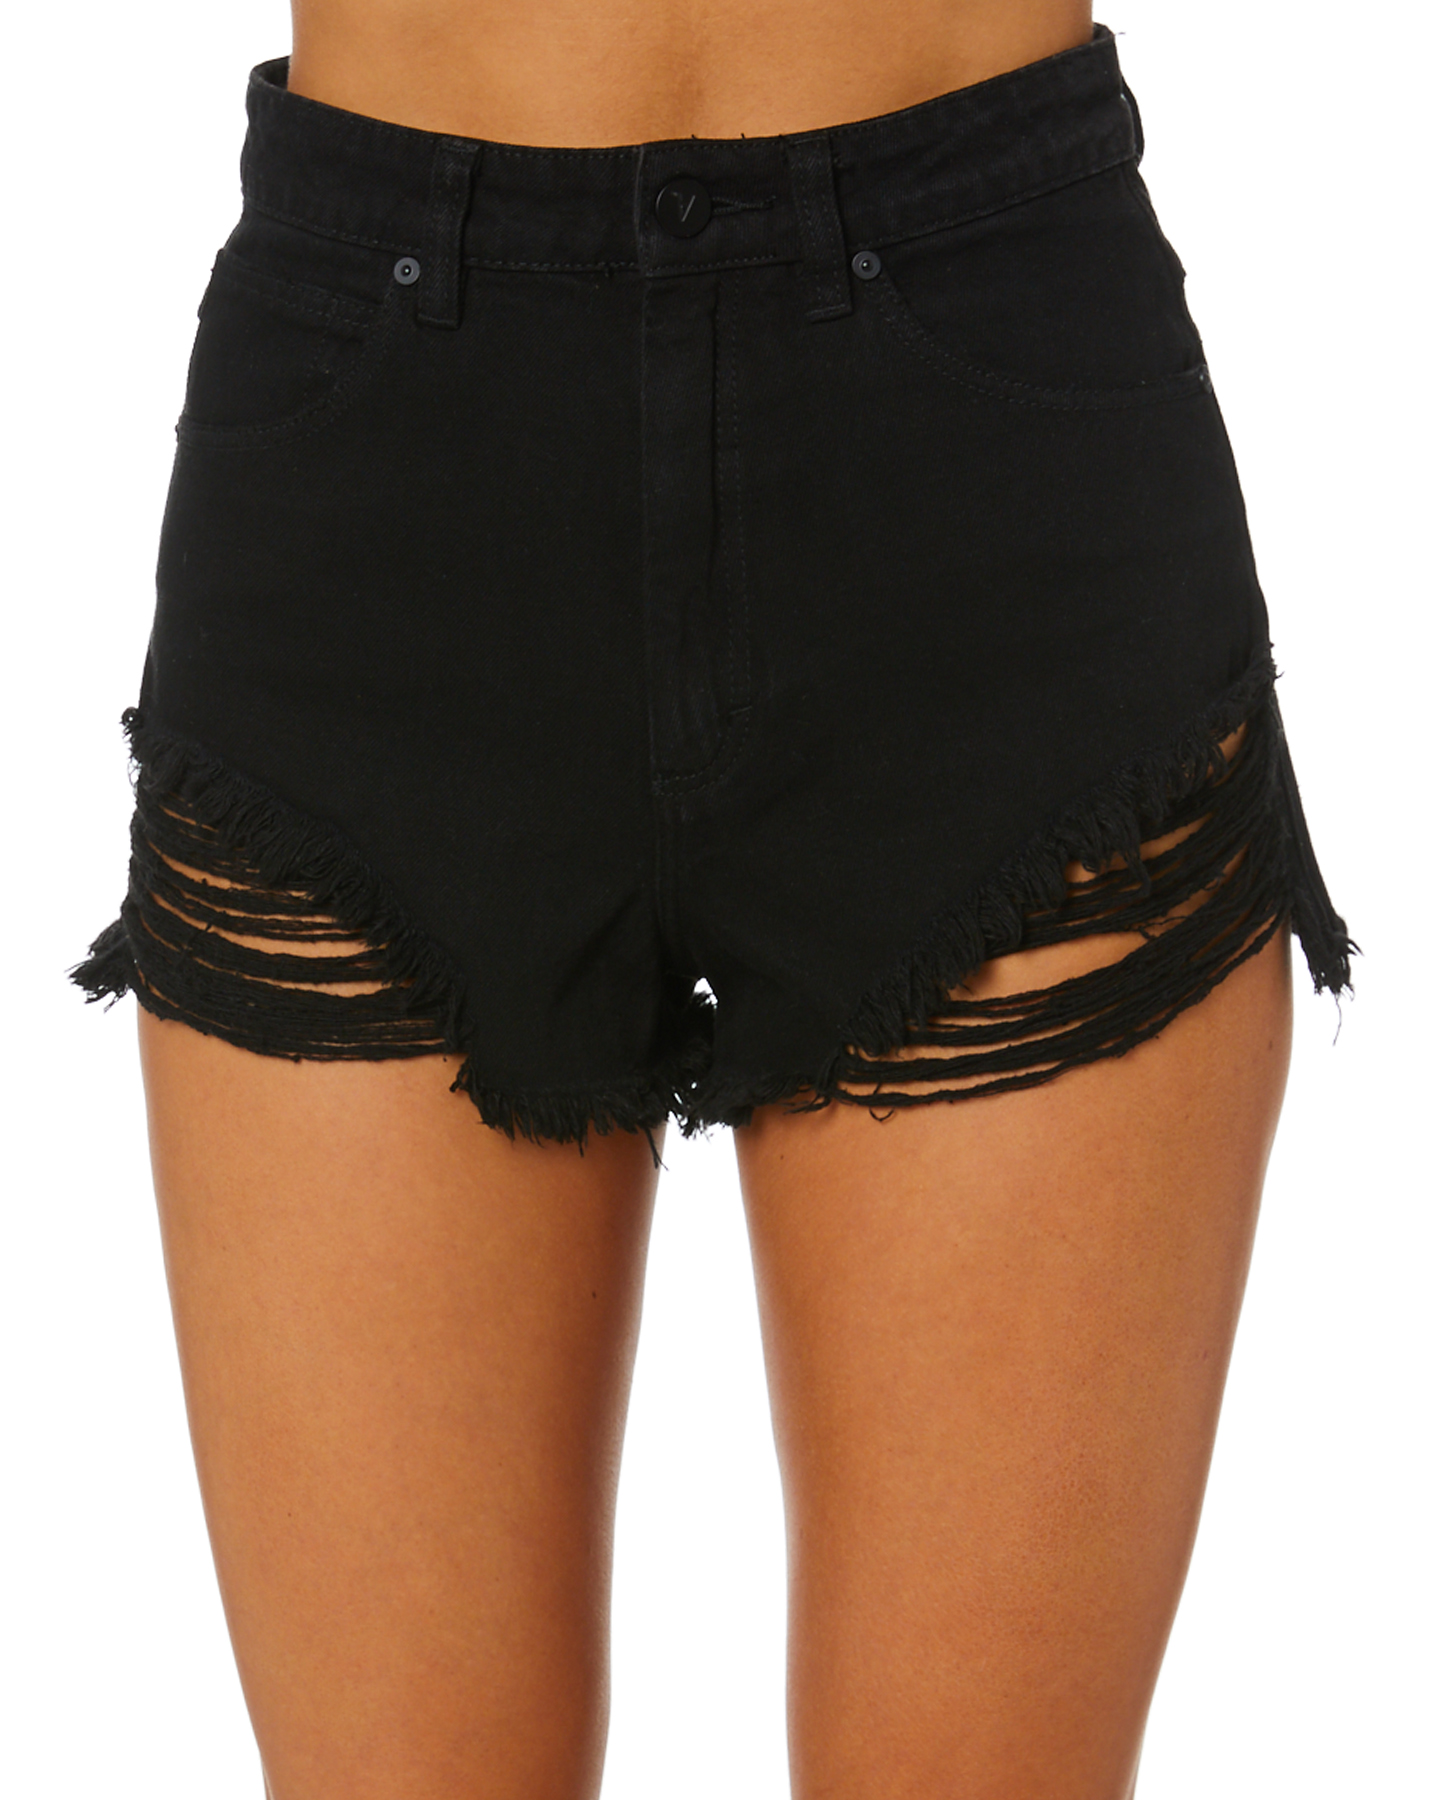 Image of A.Brand A High Relaxed Womens Denim Short Salty Black